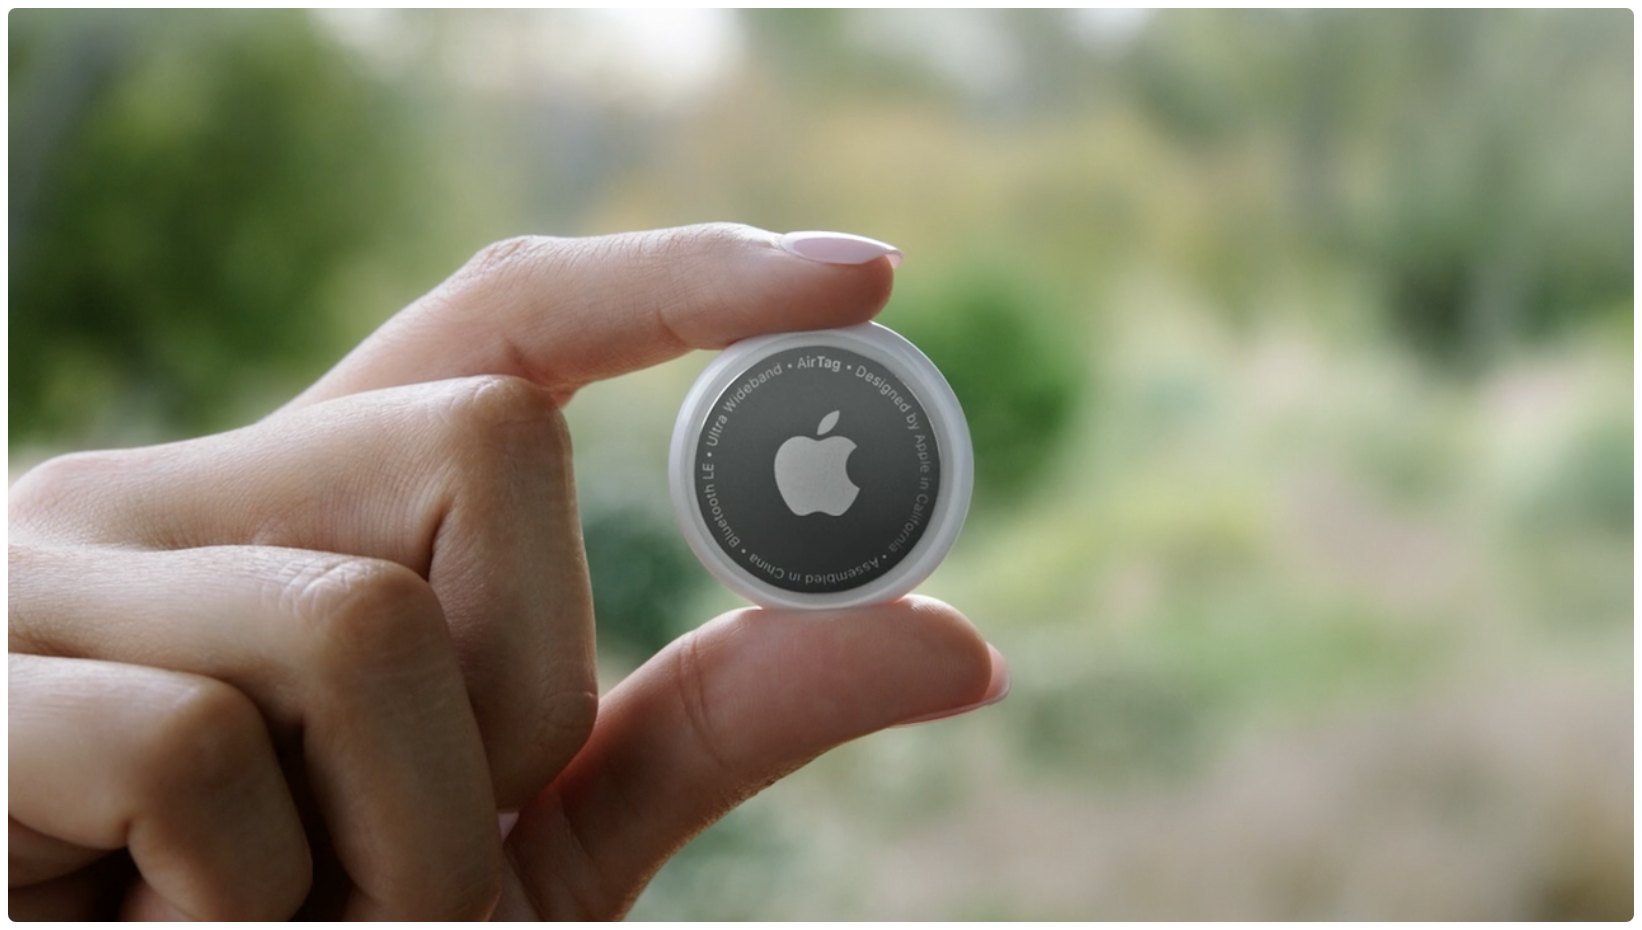 Apple's promotional image for the AirTag personal item tracker